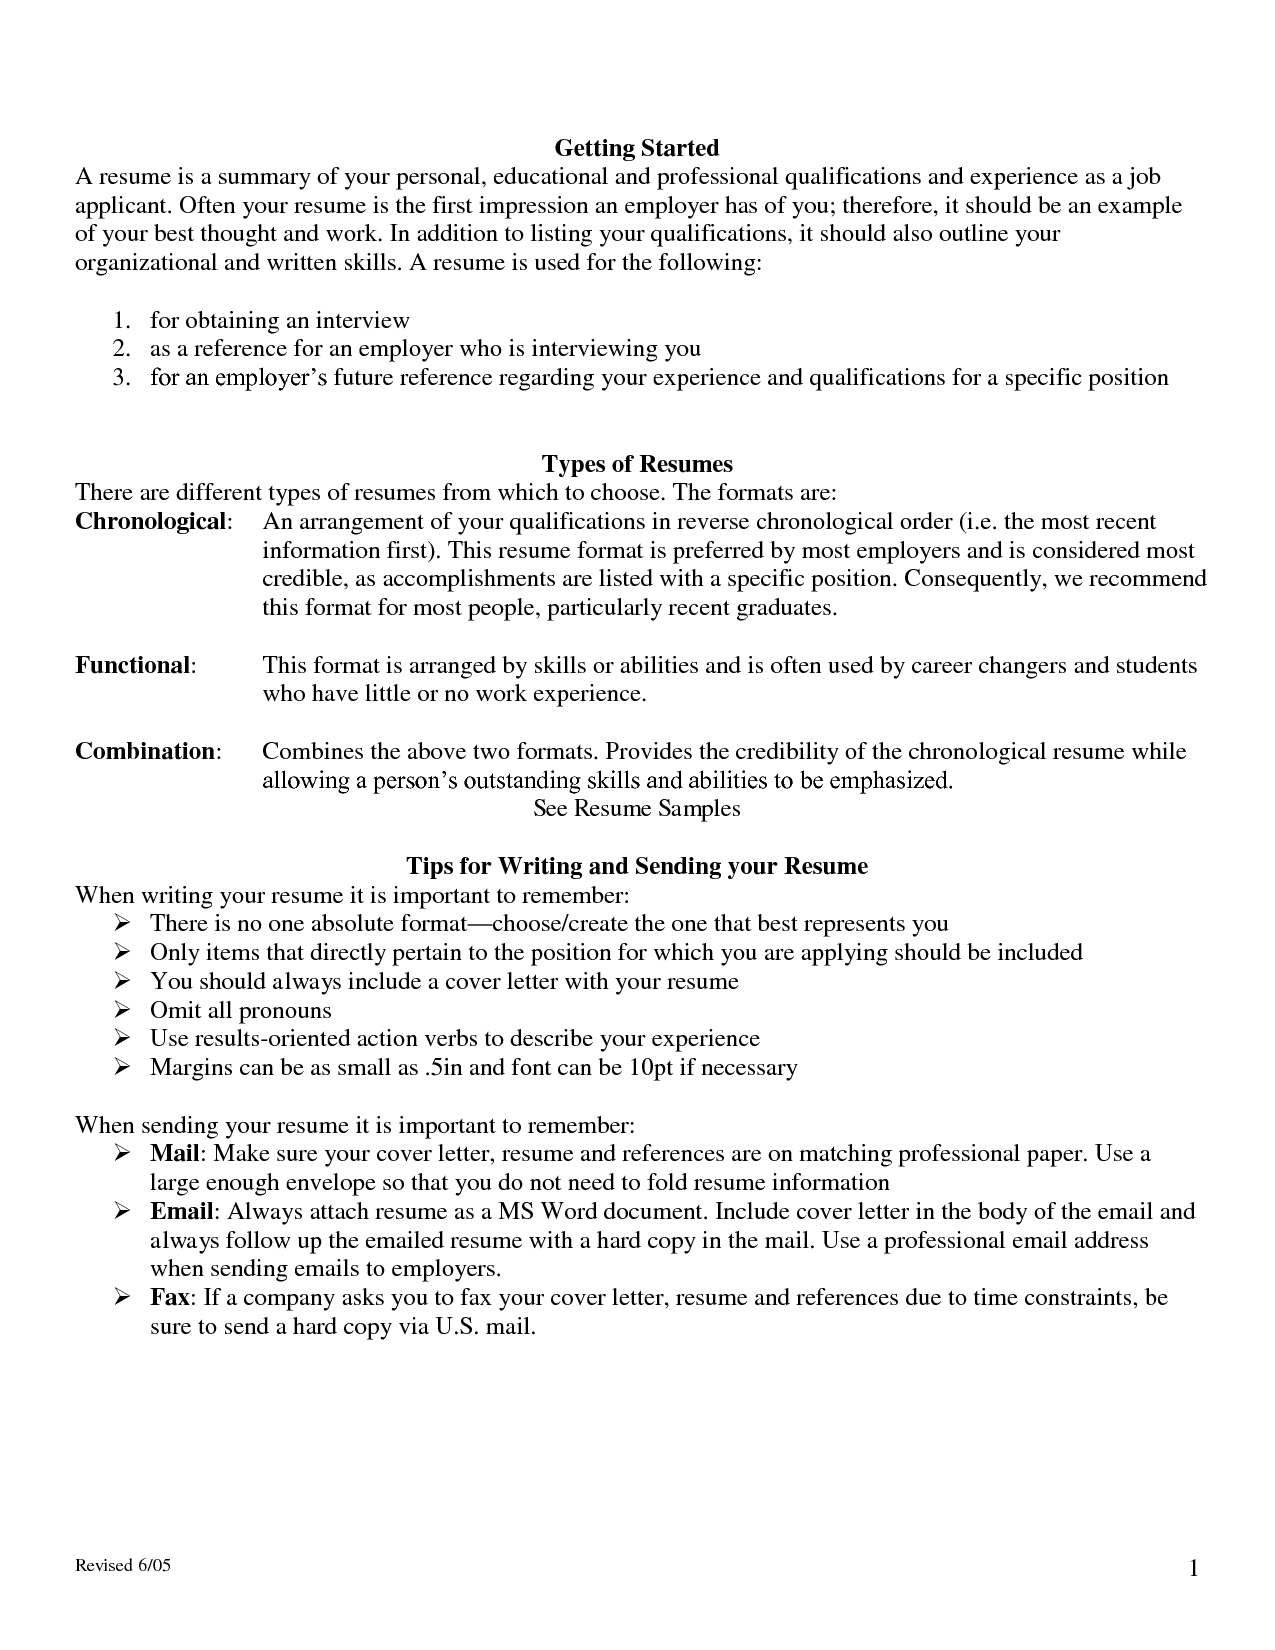 Sample Resume For Entry Level Bank Teller http//www